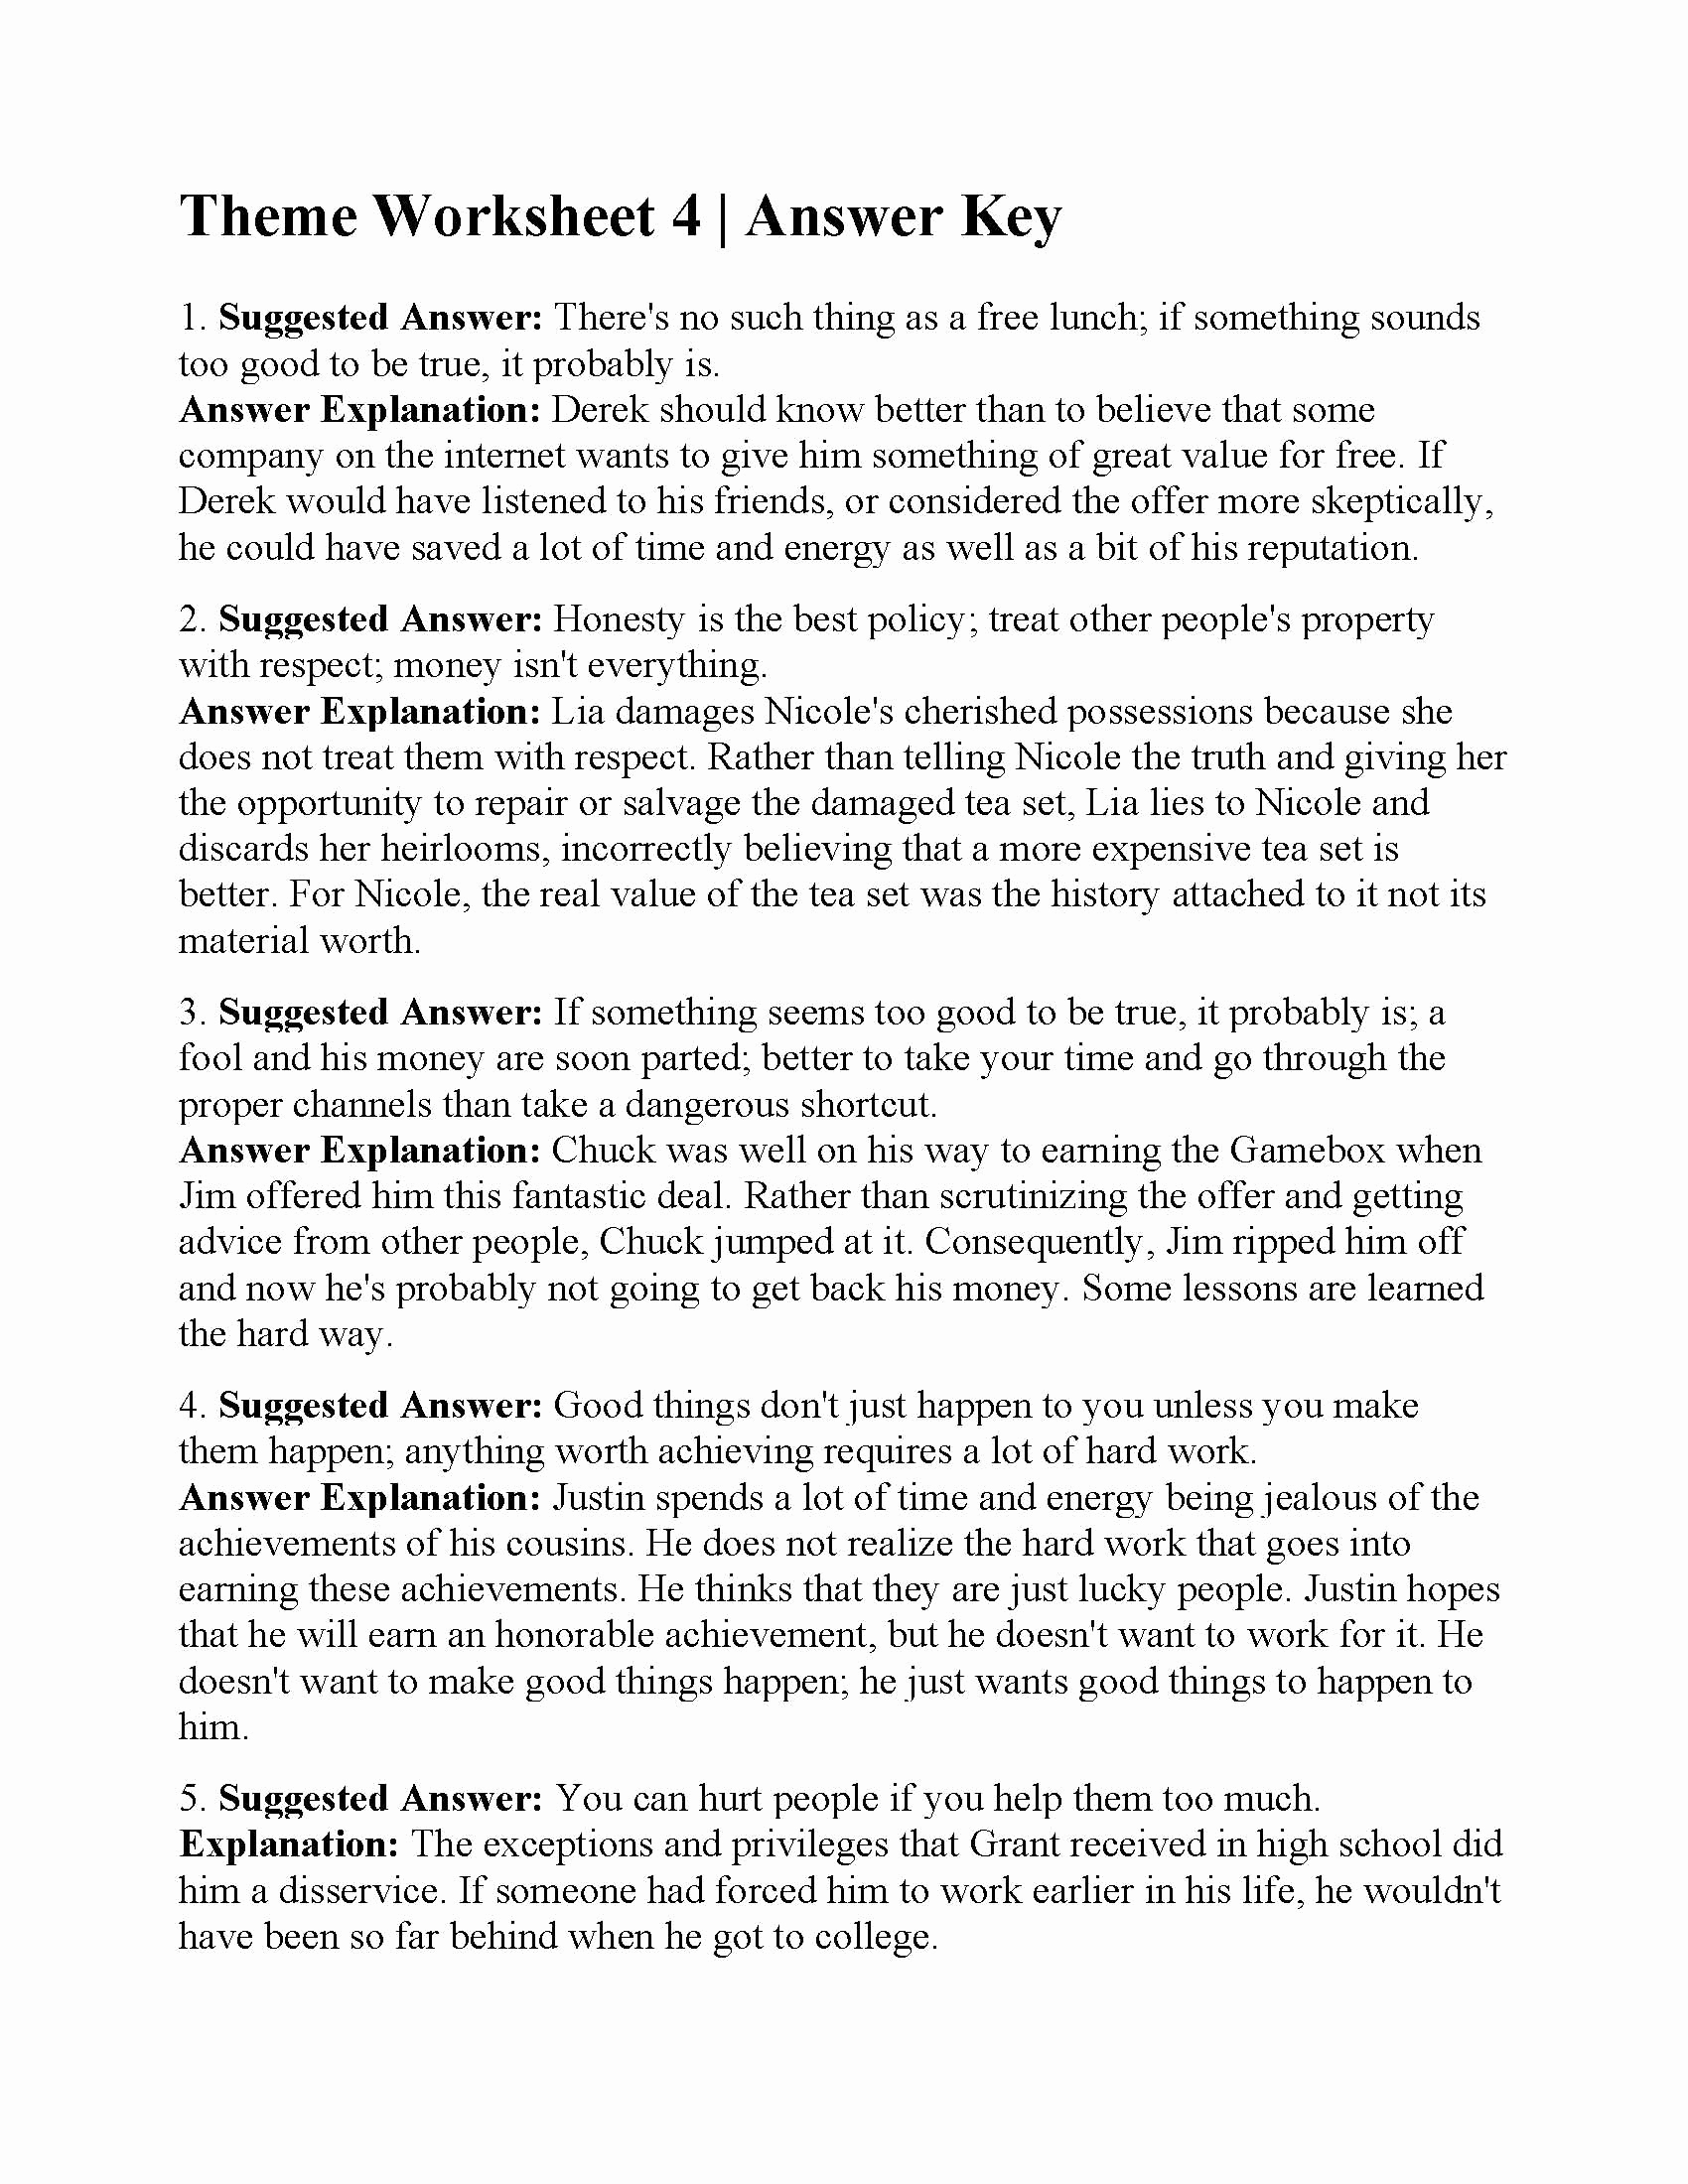 Identifying theme Worksheet Awesome This is the Answer Key for the theme Worksheet 4